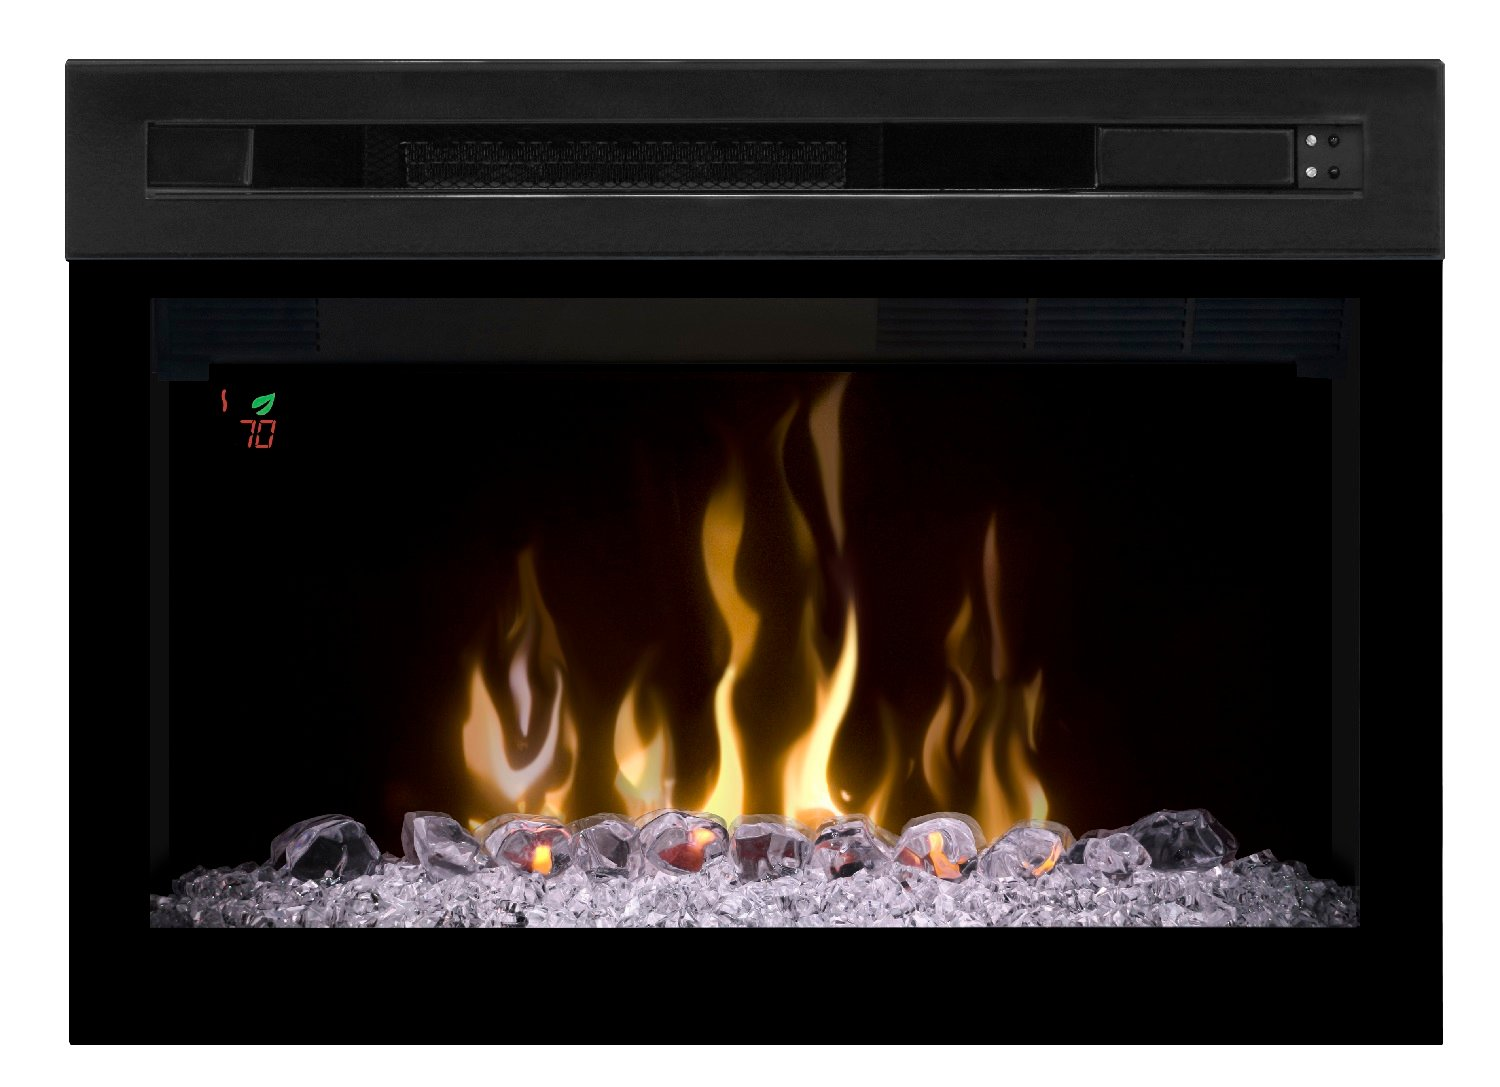 dimplex 36 revillusion built in electric fireplace rbf36 rh electricfireplaces com Essential Home Fireplace Electric Essential Home Fireplace Electric